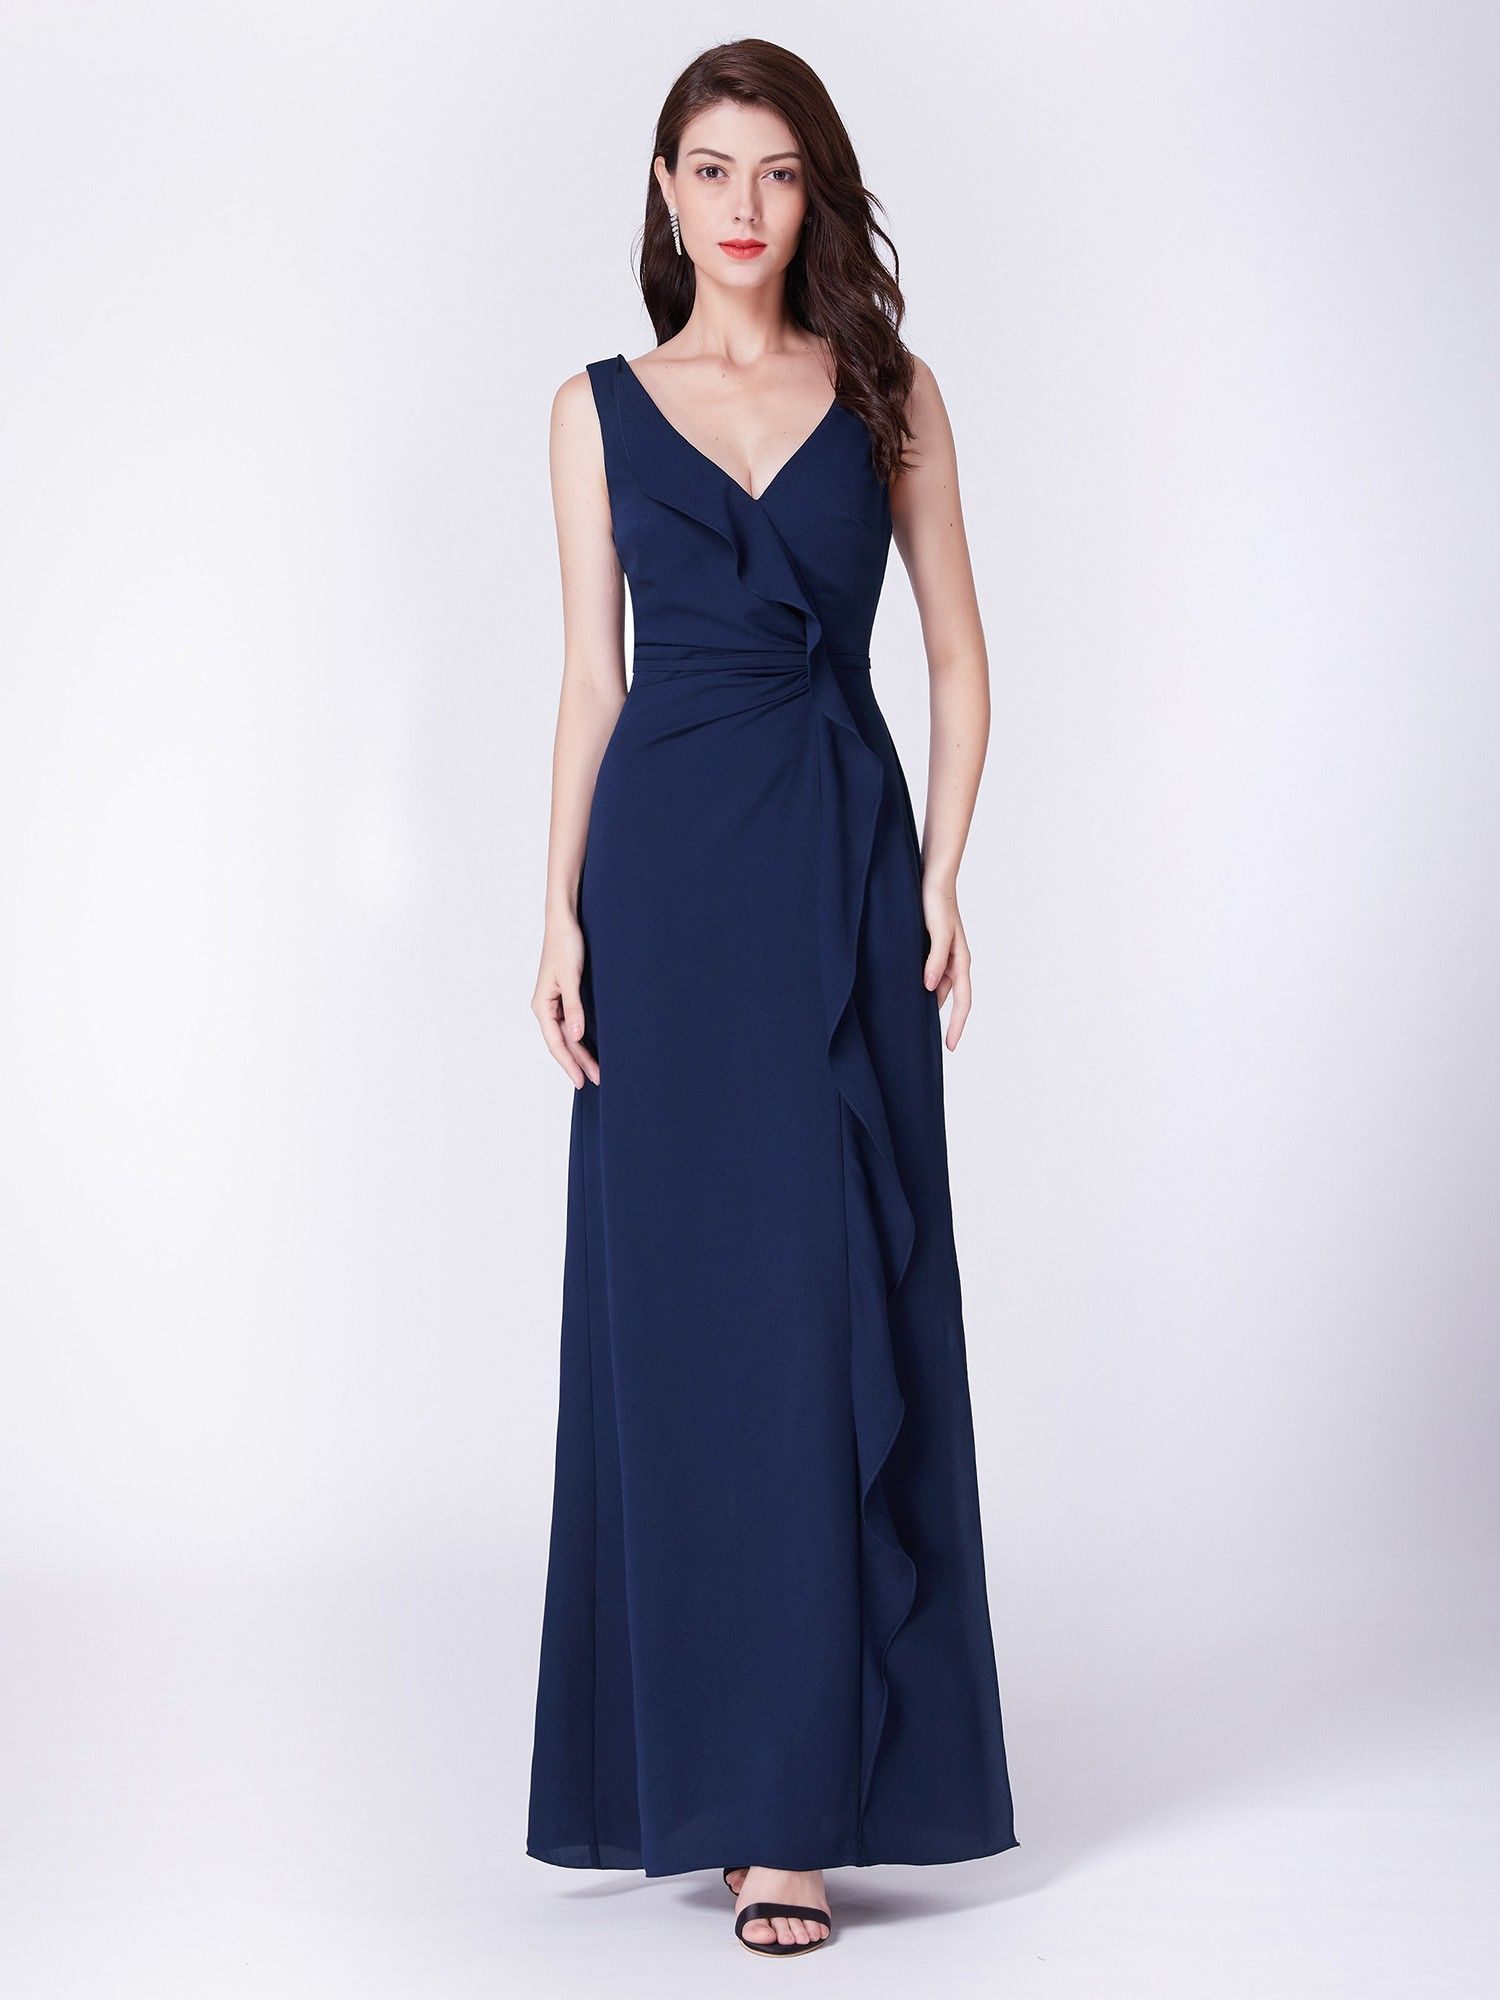 V neck floor length evening gown with ruffle in evening